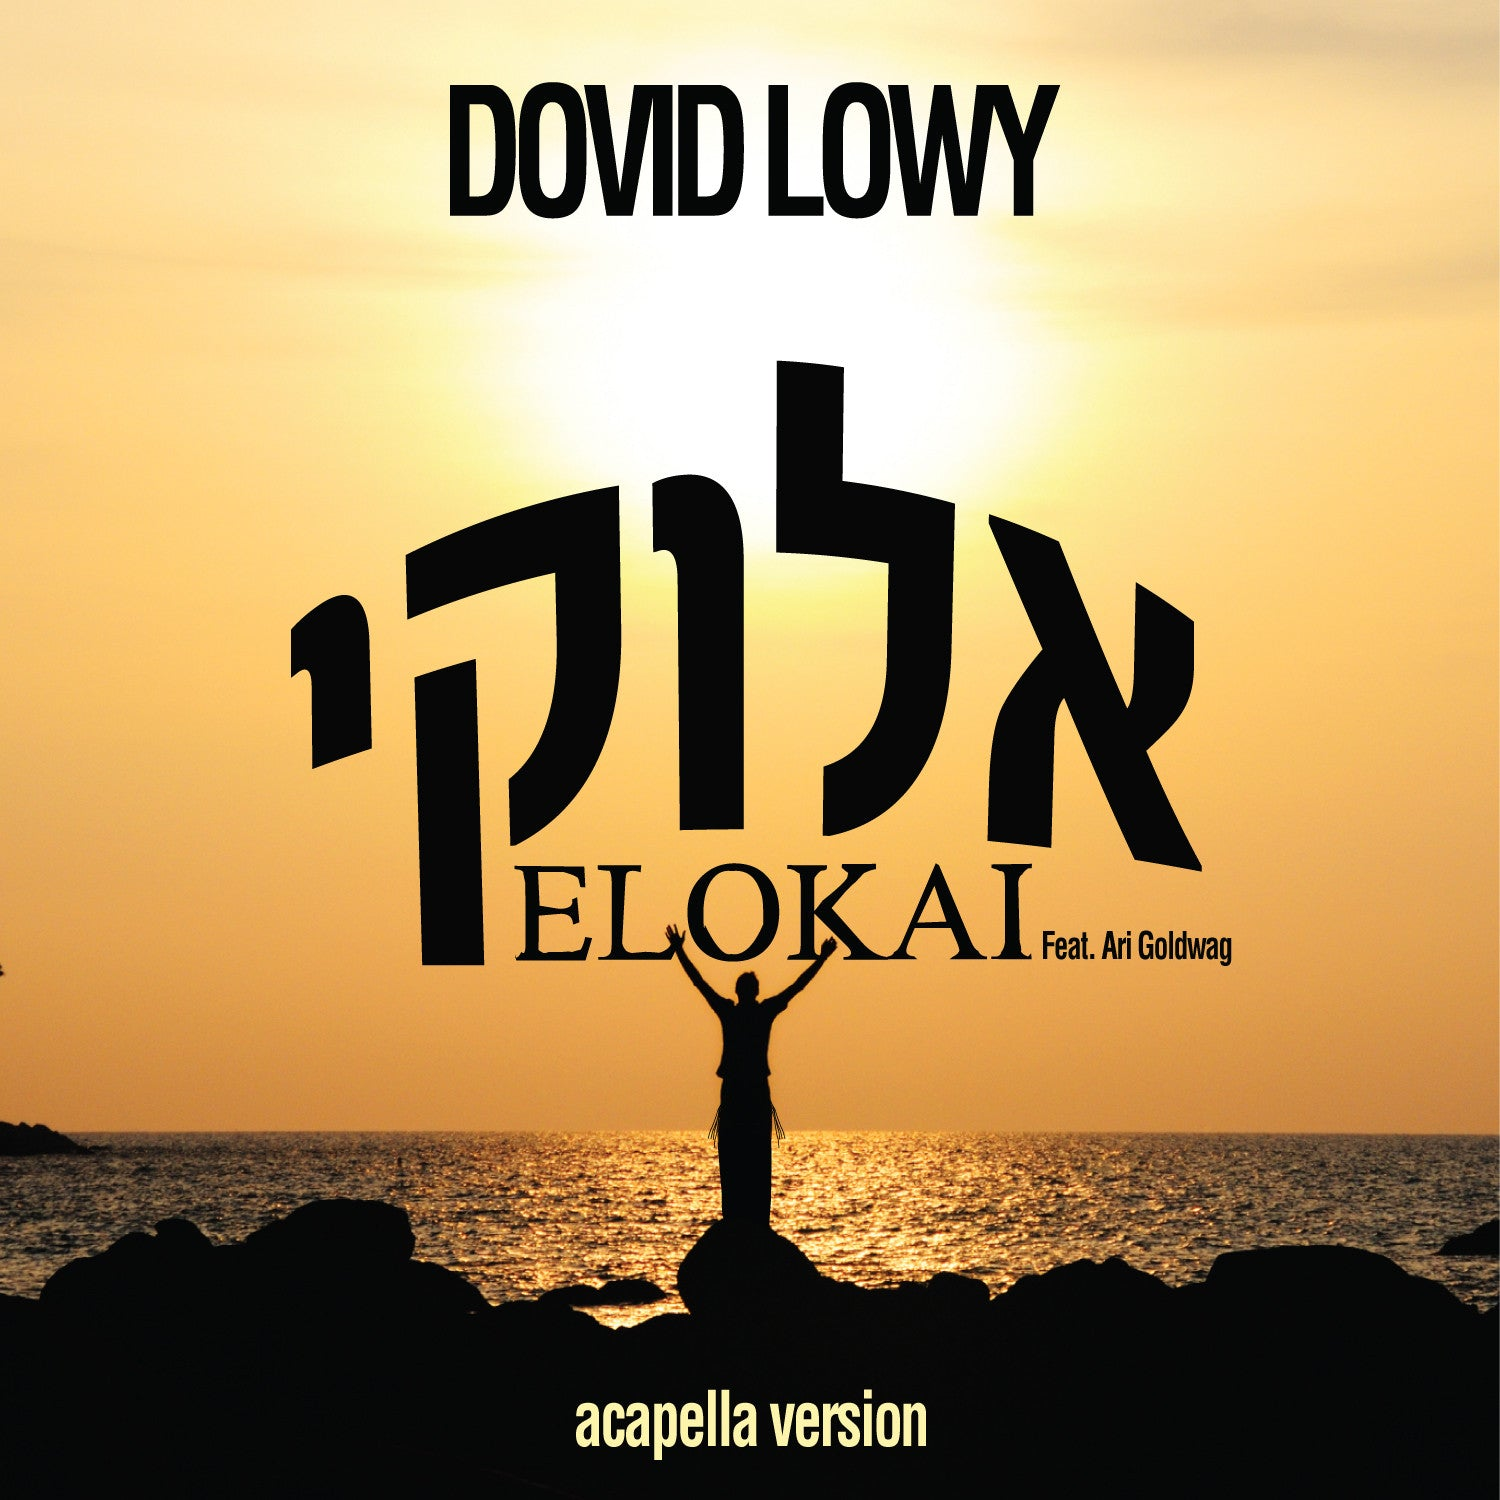 Dovid Lowy - Elokai - Free Acapella single - feat. Ari Goldwag